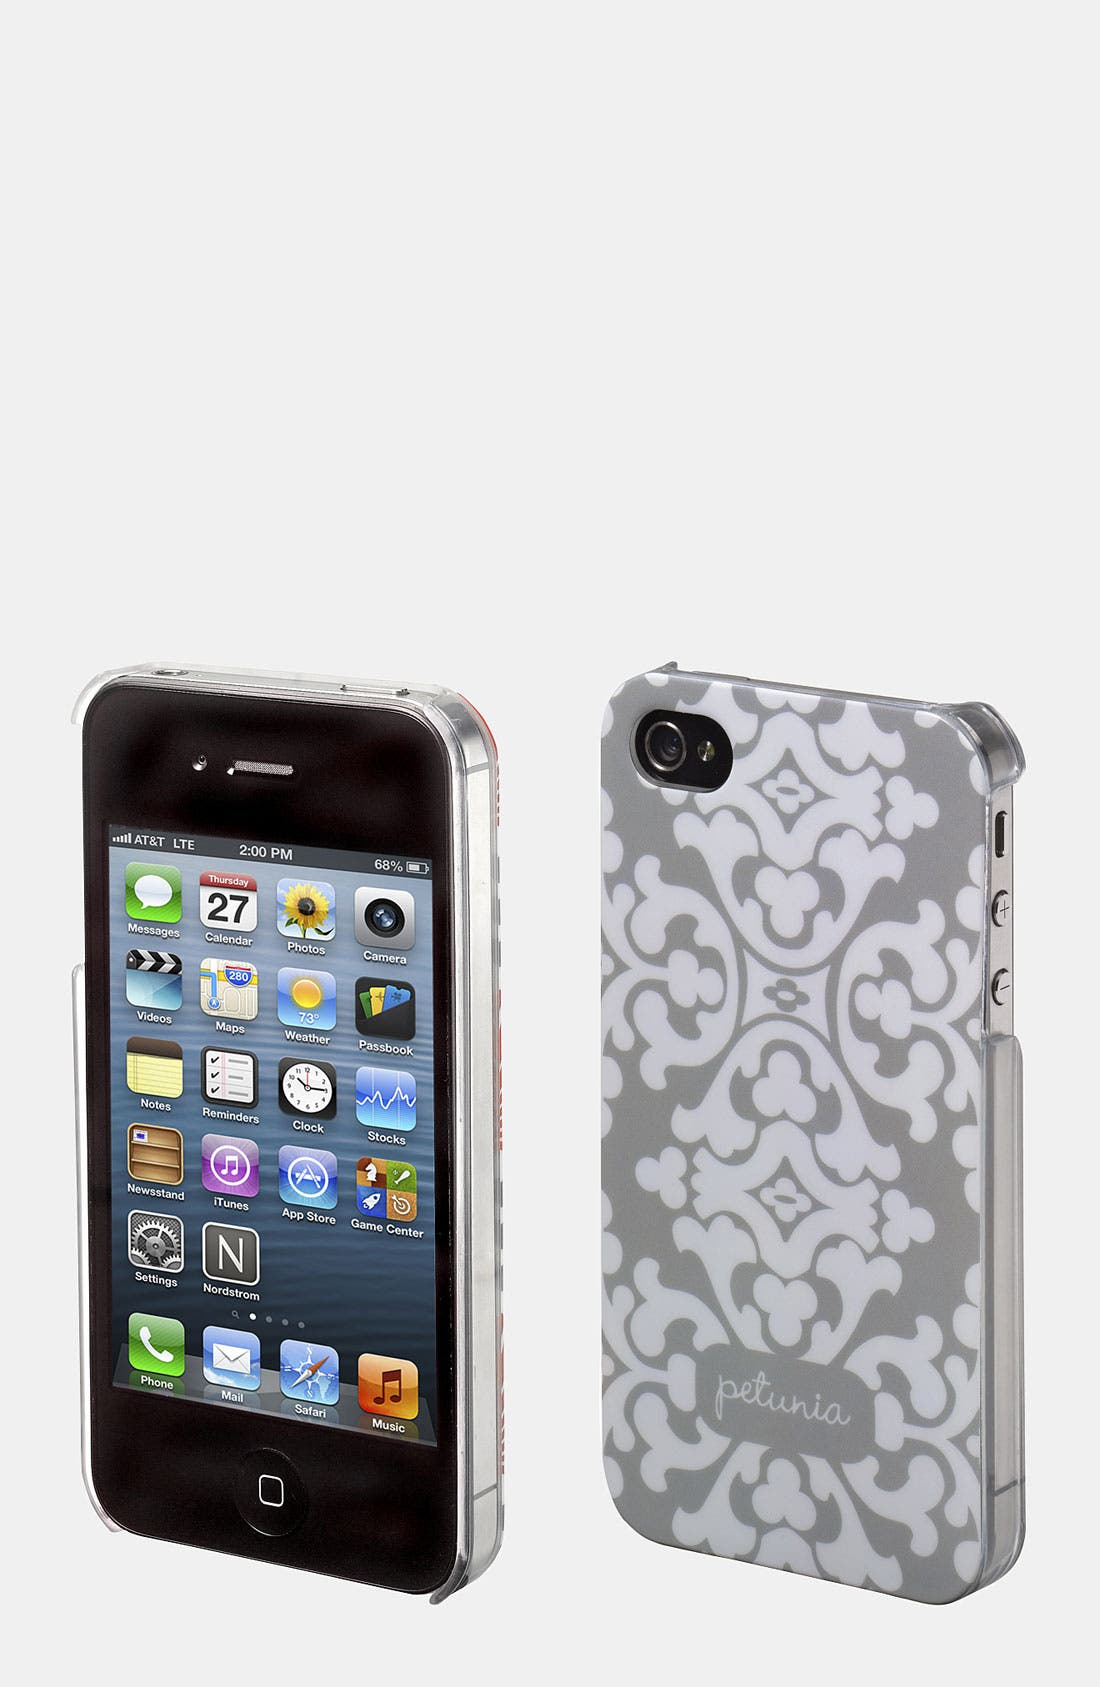 Alternate Image 1 Selected - Petunia Pickle Bottom 'Adorn' Hardcover iPhone 4 & 4S Case